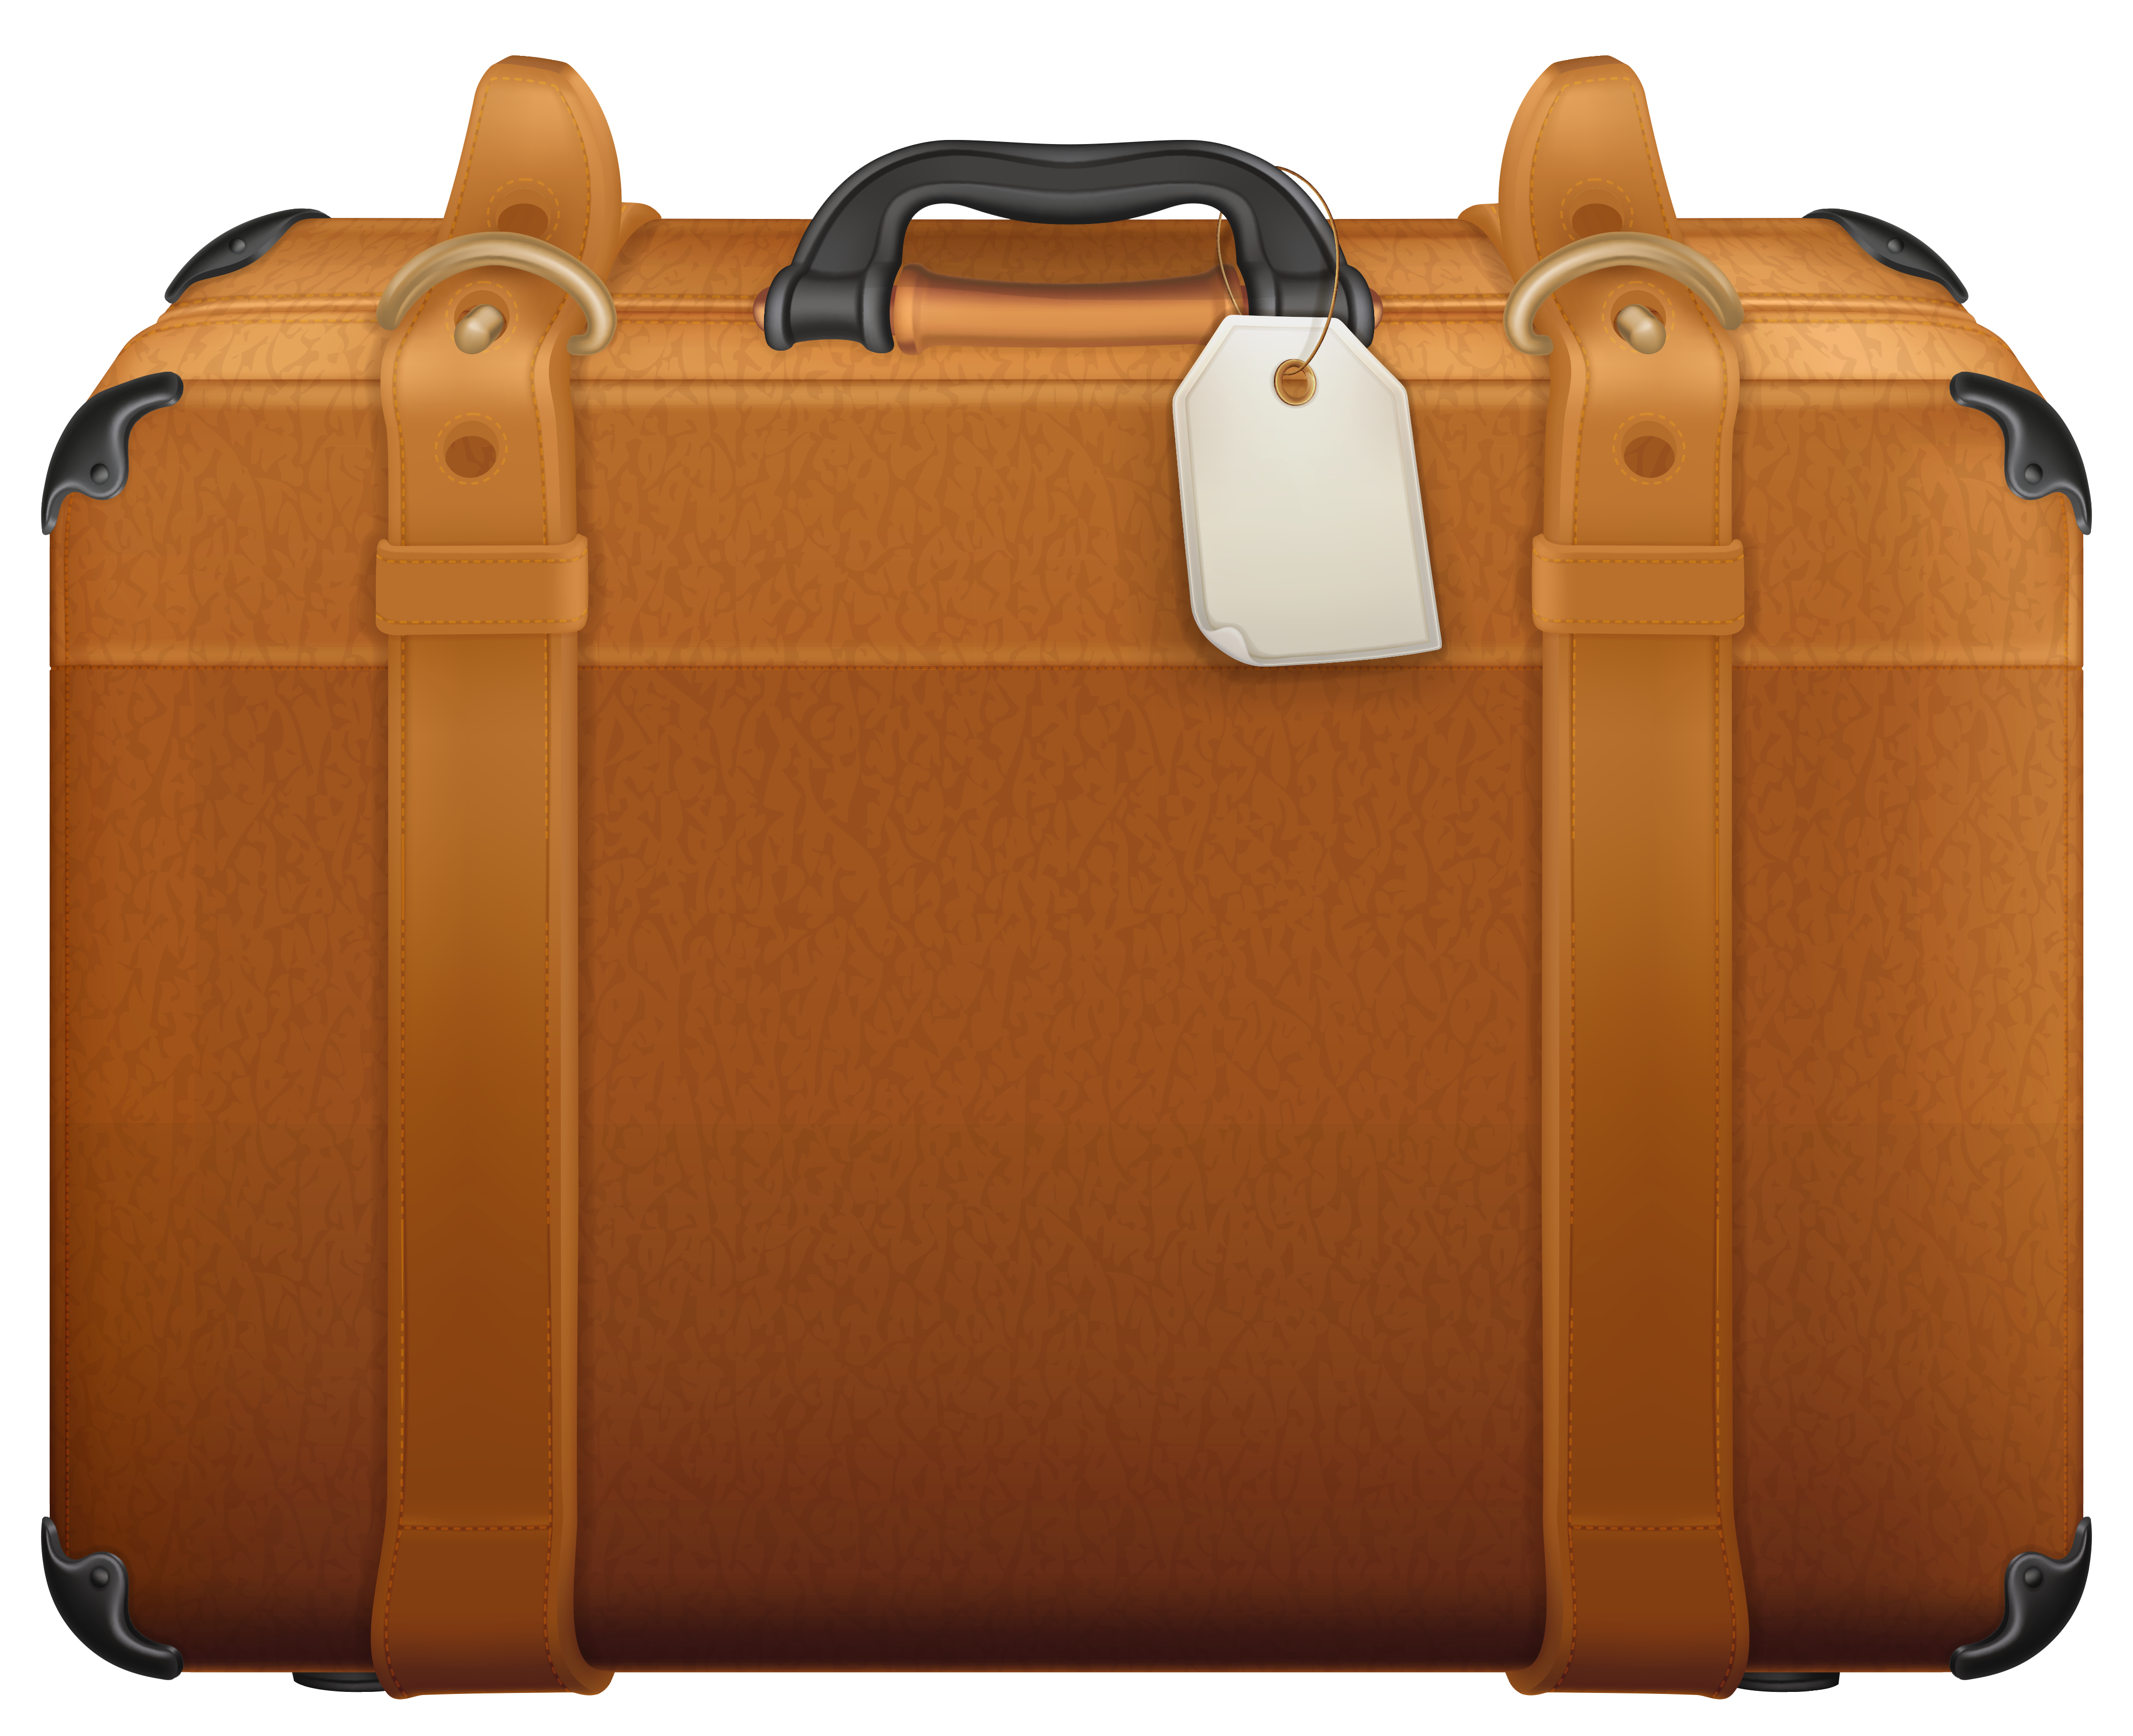 suitcase png images free download luggage clipart png luggage clipart vector free